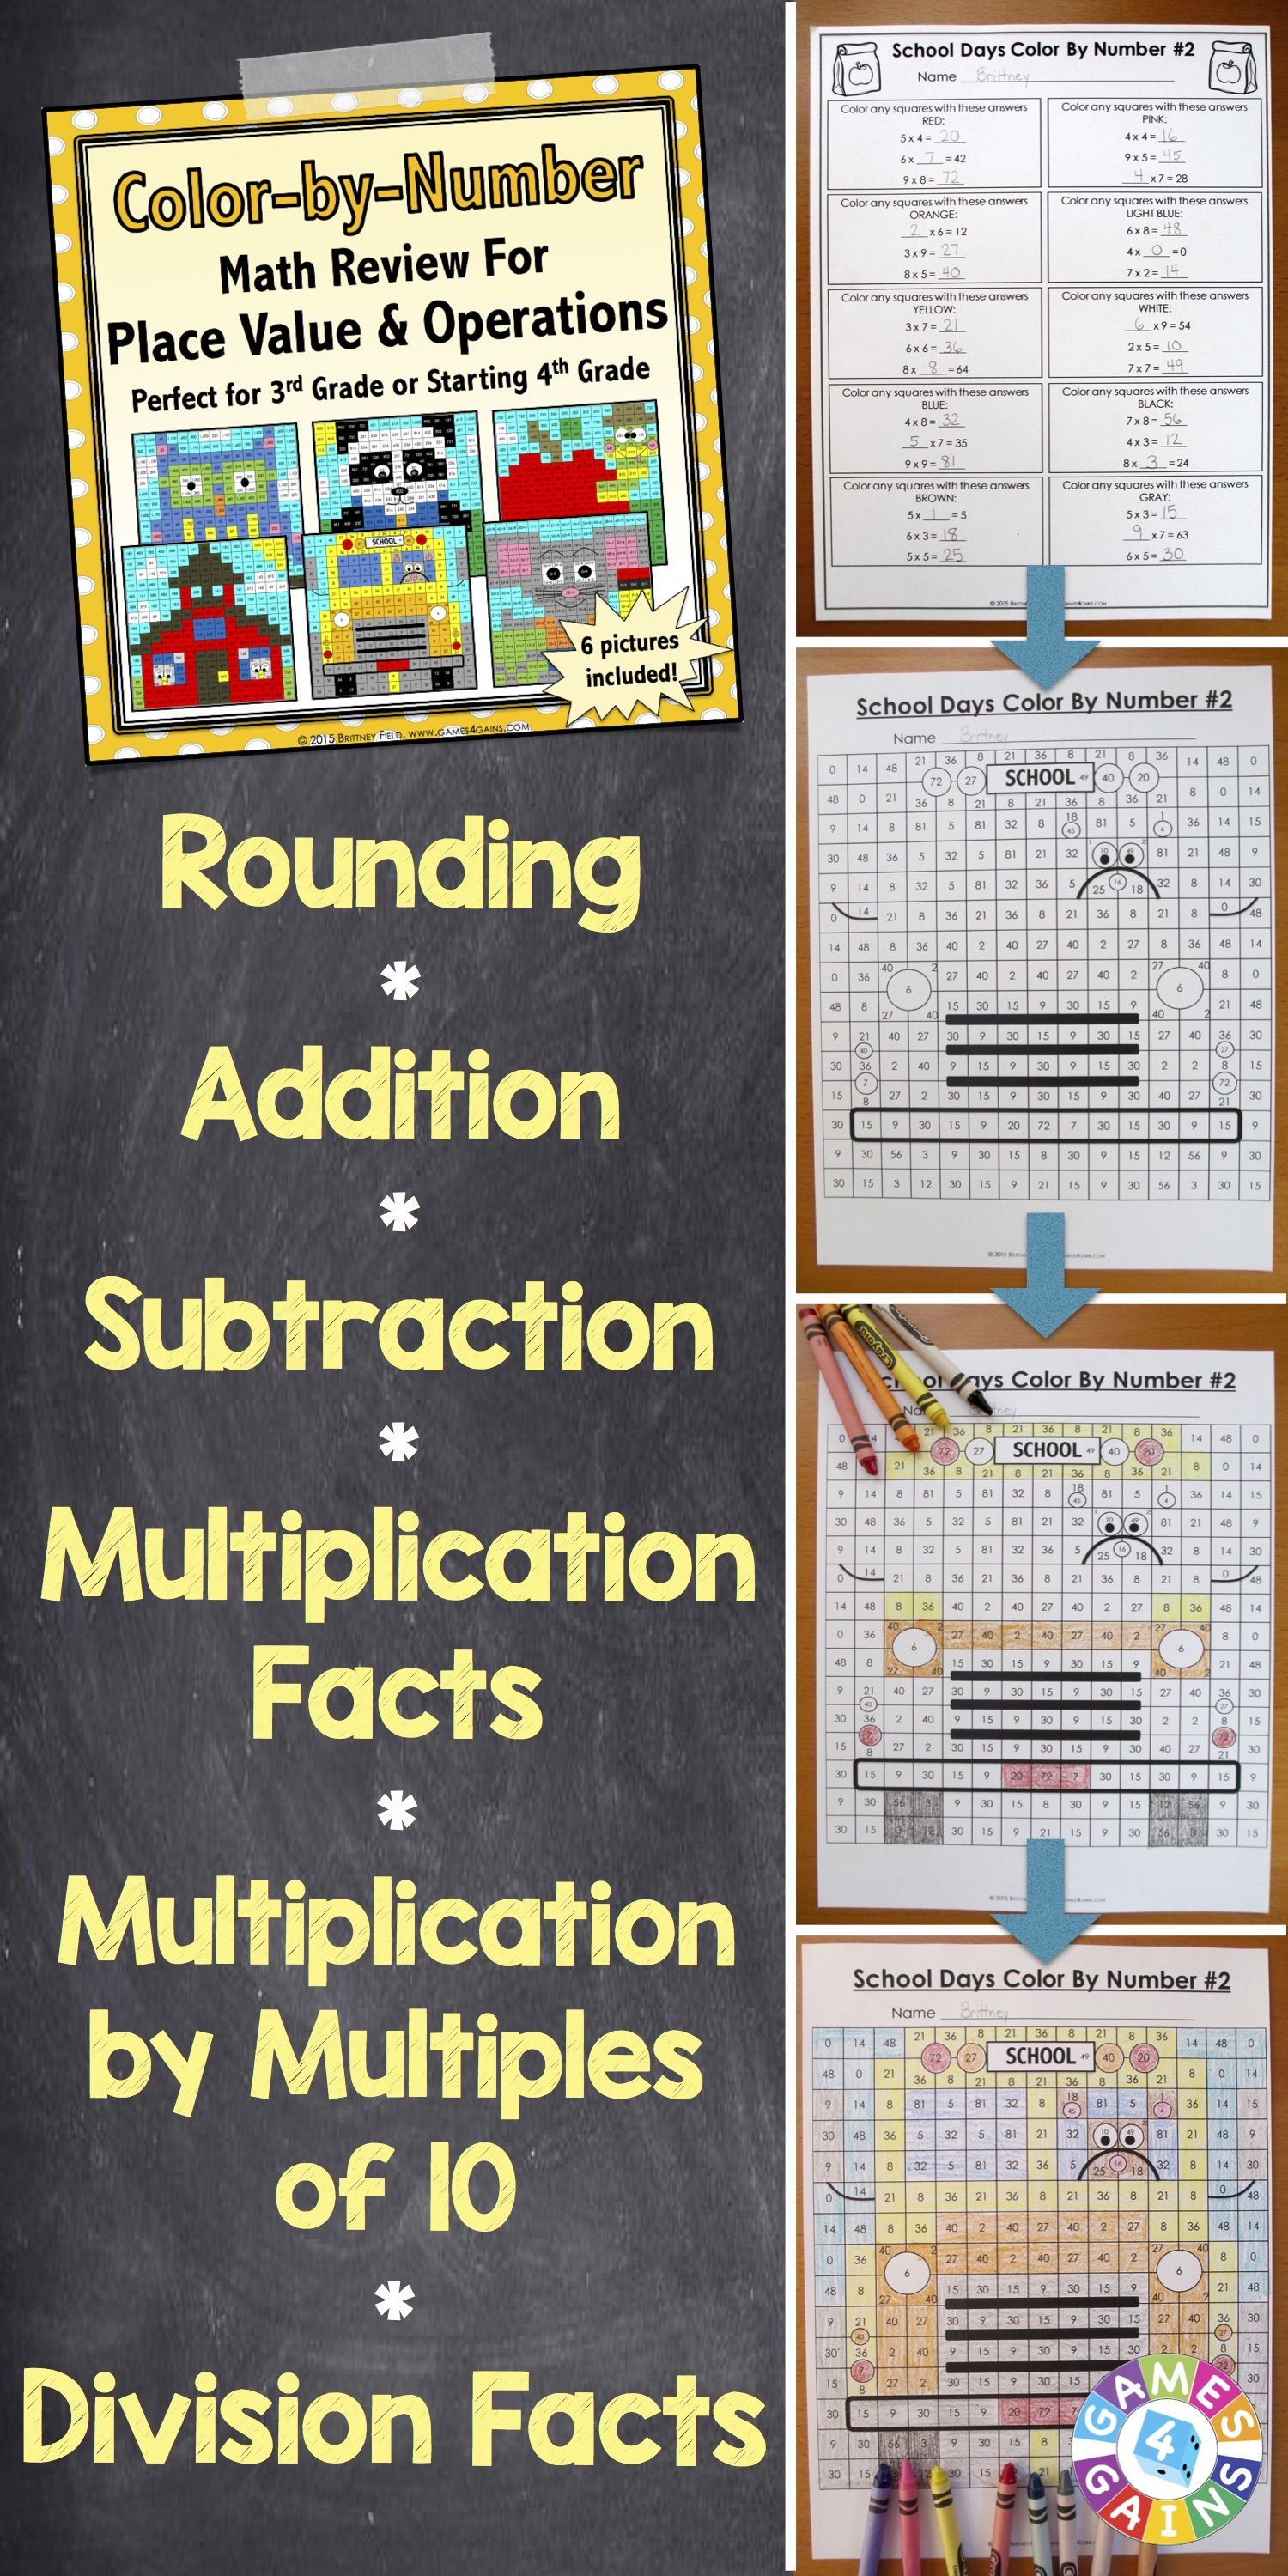 3rd Grade Place Value Worksheets 4th Grade Back To School